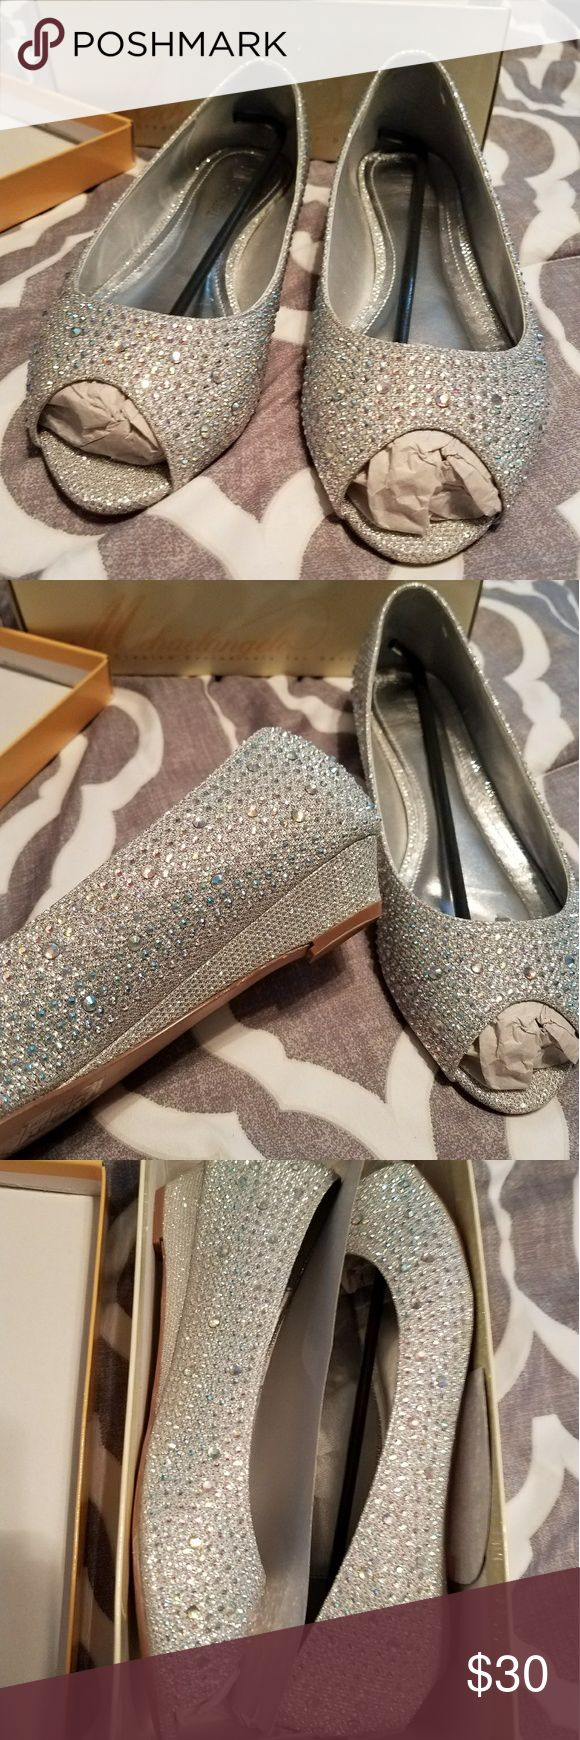 David's Bridal Rhinestone Peep toe Wedge Beautiful peep toe wedges covered in rhinestones, size 10 fit a little wide barely worn David's Bridal Shoes Wedges